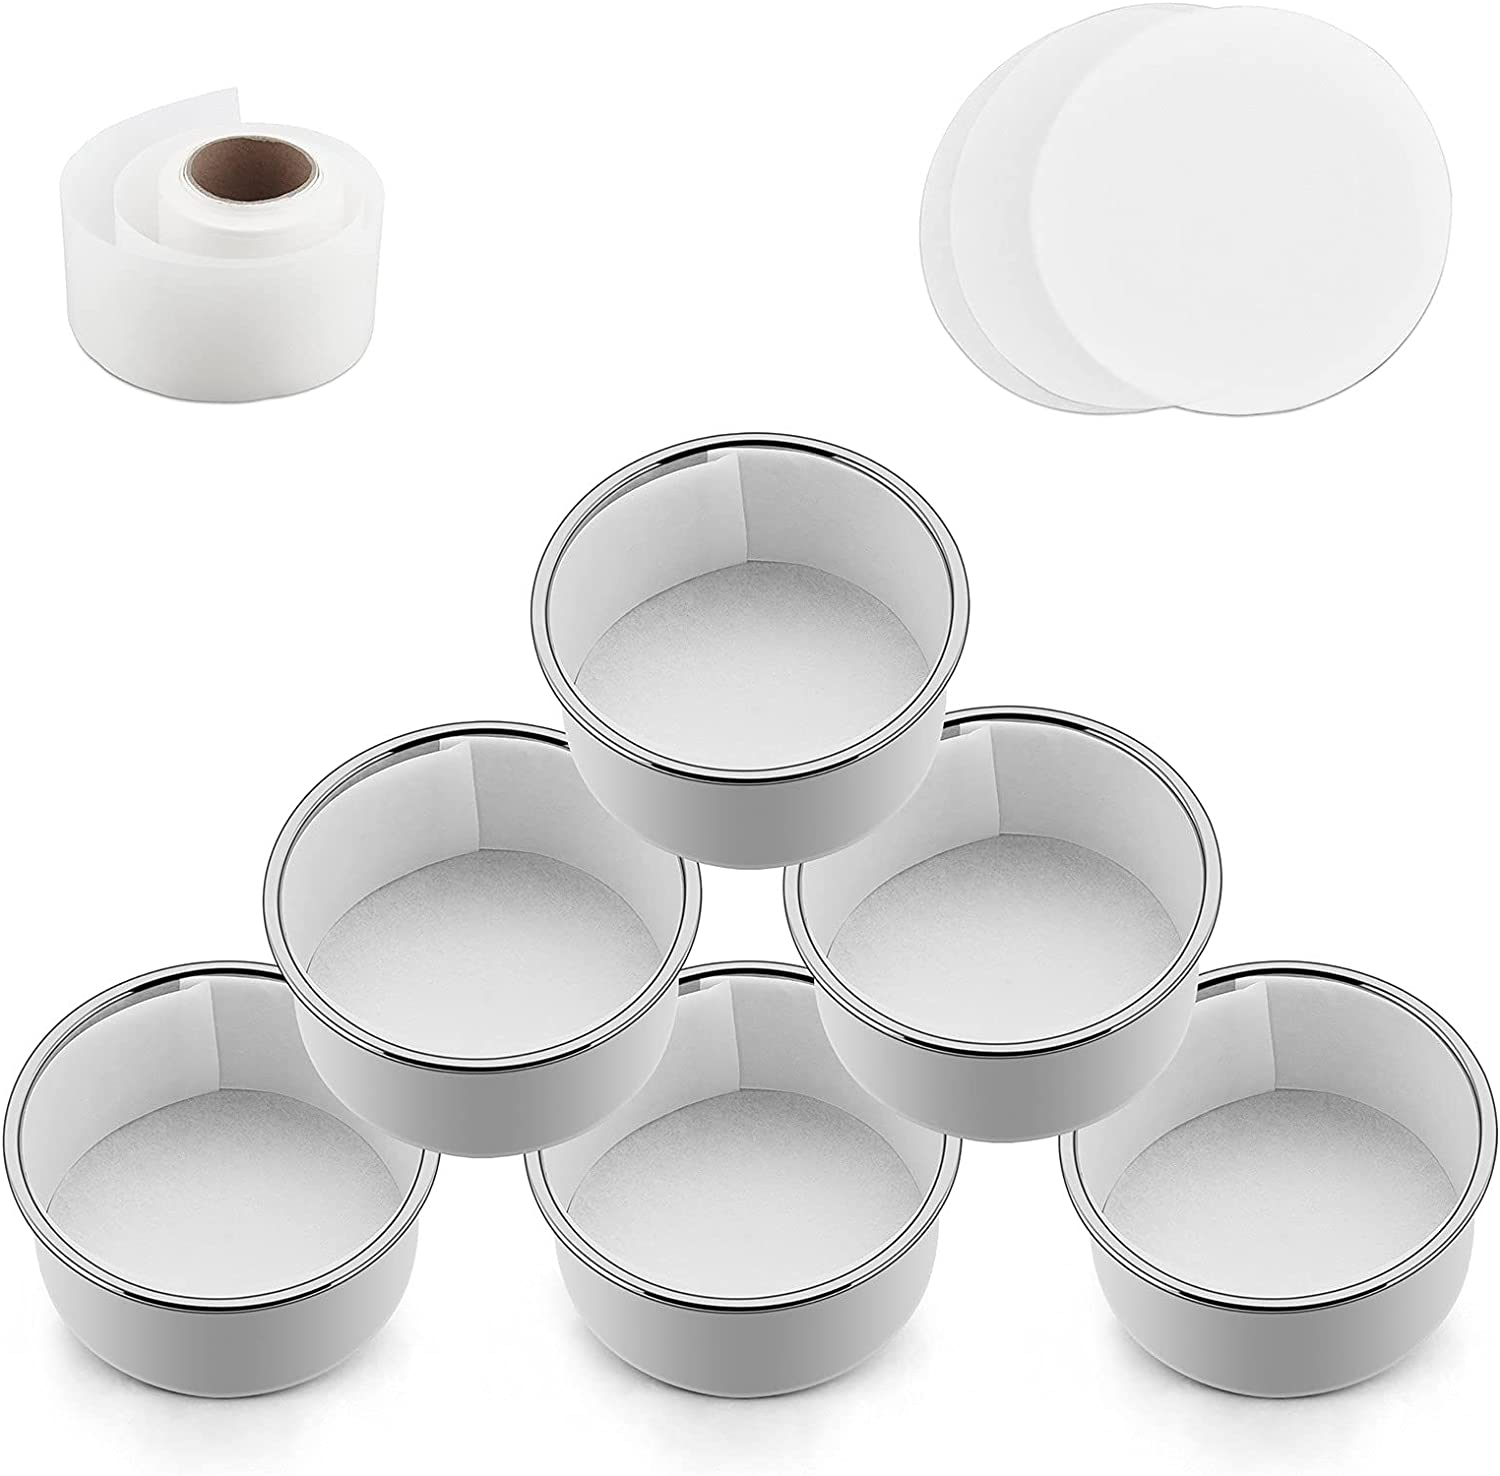 TeamFar 4 Inch Cake Pans, Stainless Steel 6 PCS Small Round Cake Pan with 180 Parchment Paper & Side Liner Roll (1.85in x 111 ft), Non-Toxic & Durable, Non-Stick & Heat-Resistant, Dishwasher Safe